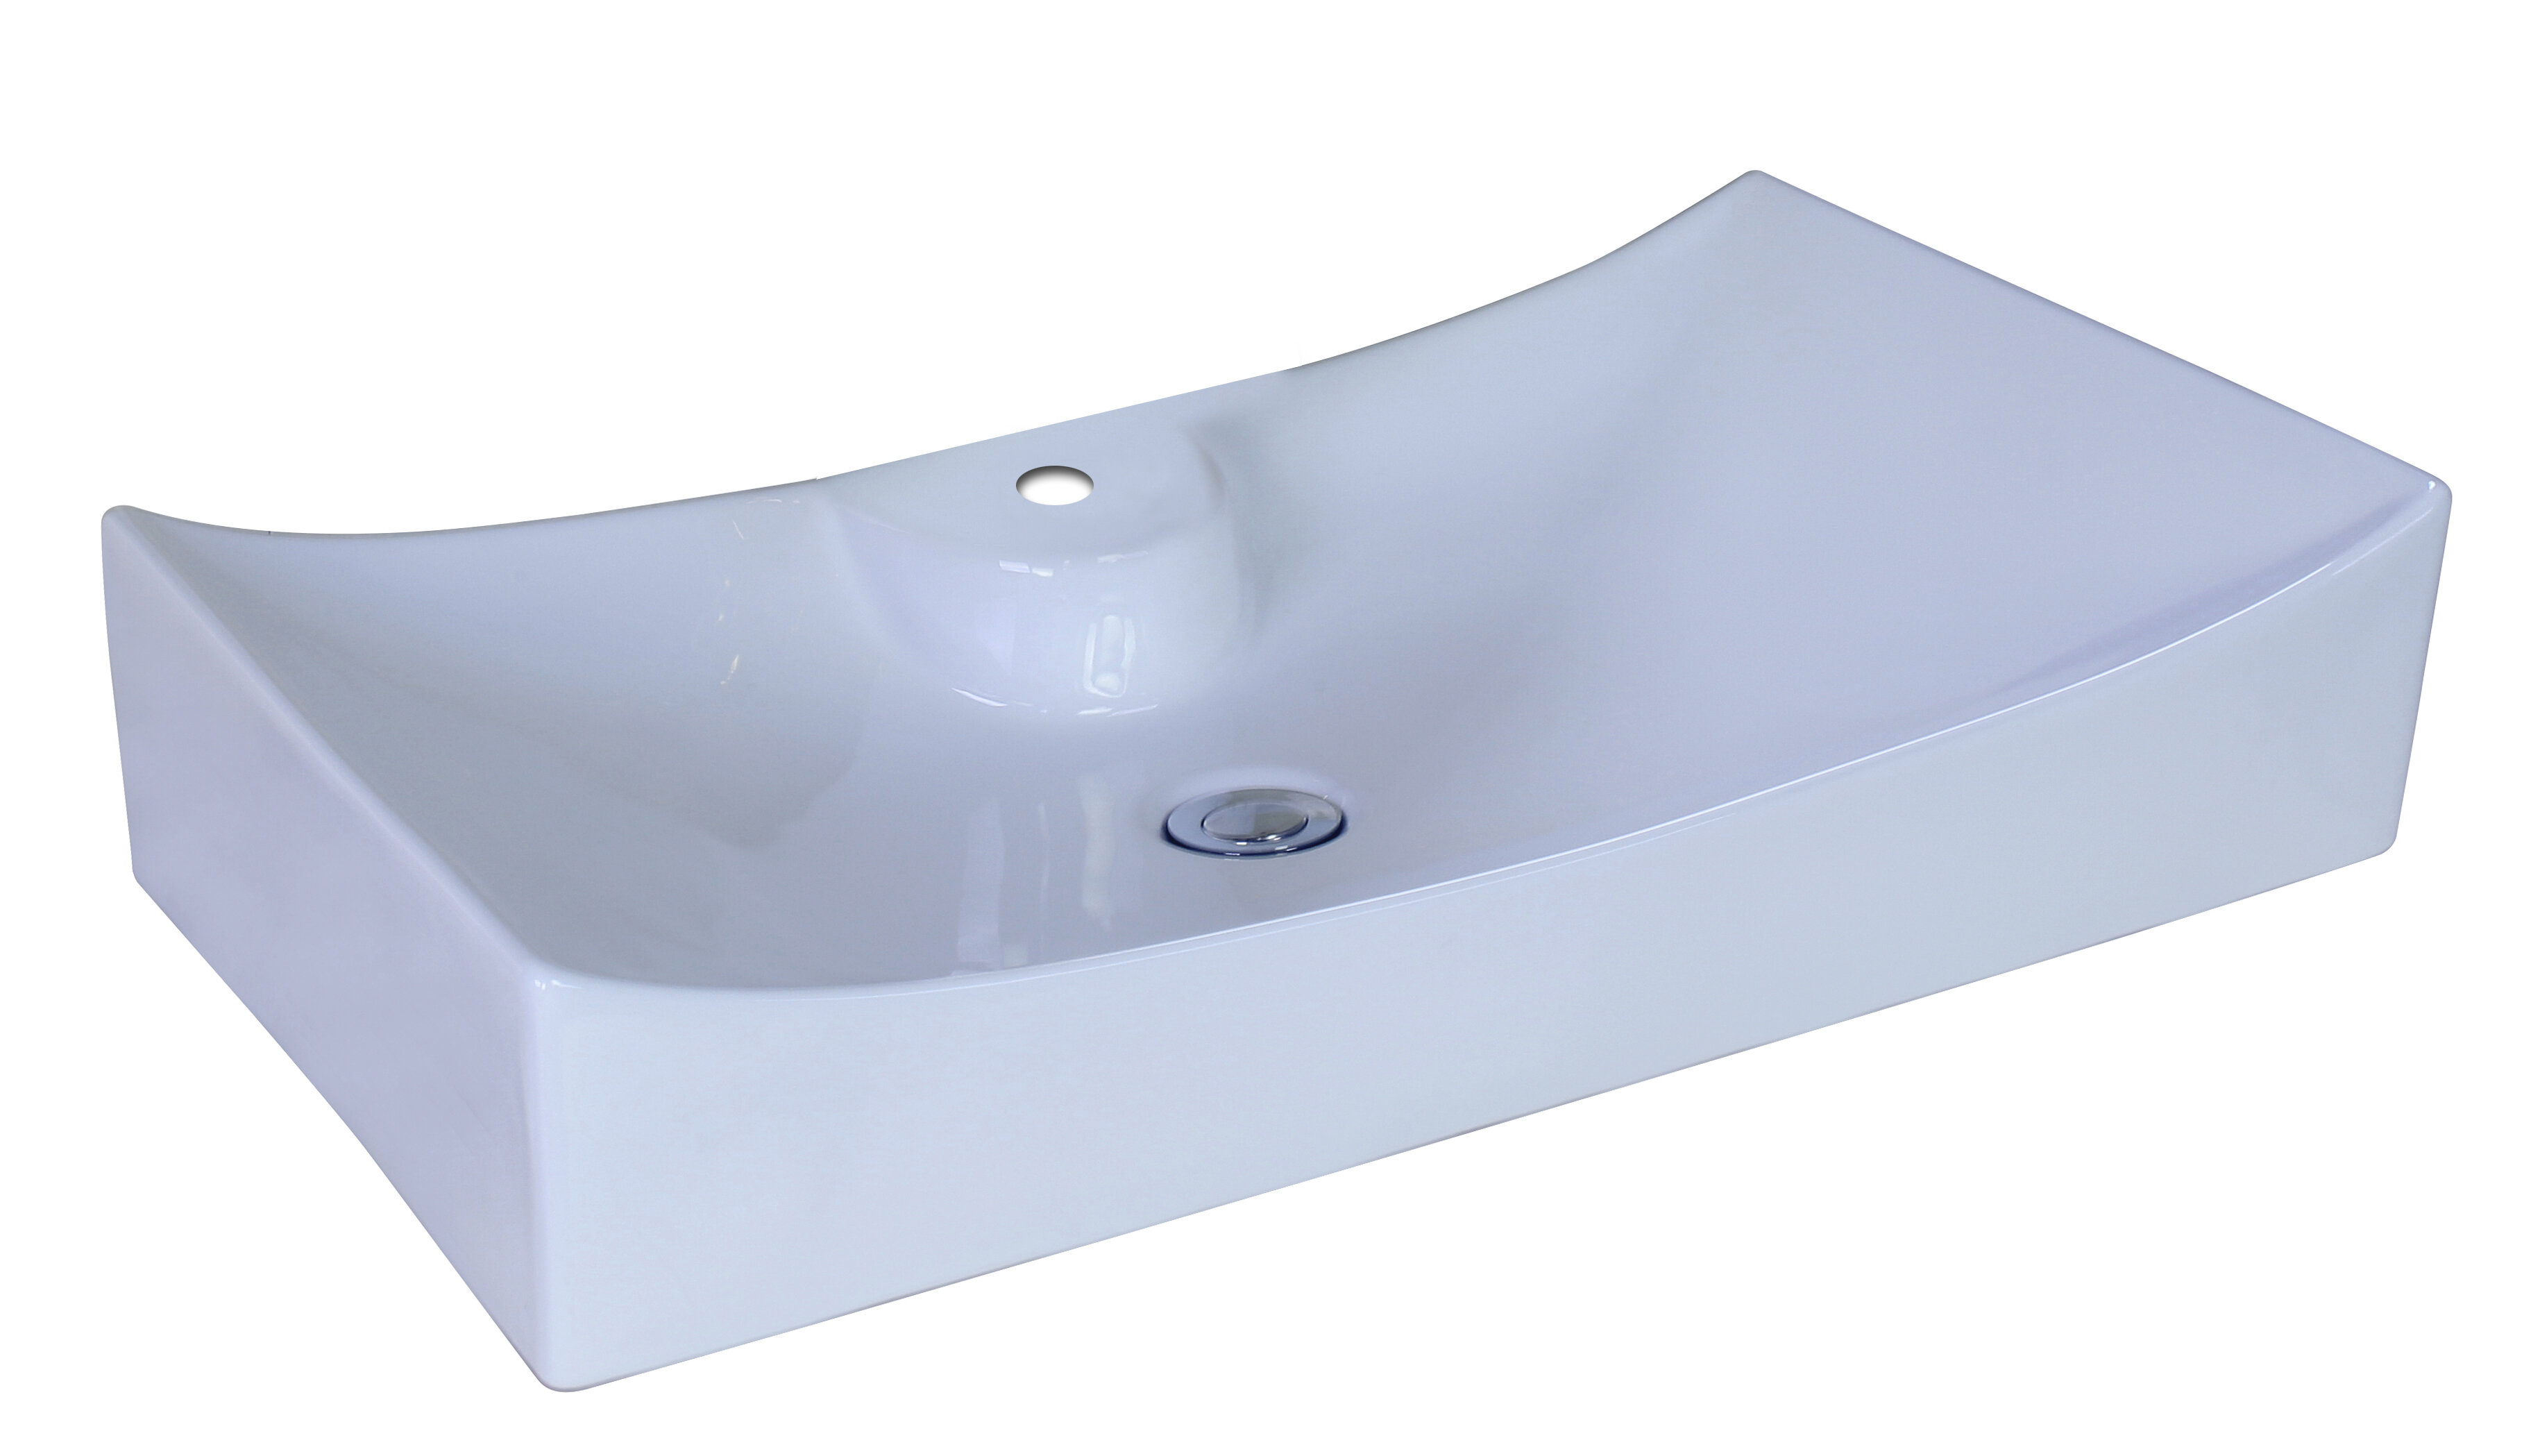 American Imaginations Ceramic Rectangular Vessel Bathroom Sink | Wayfair